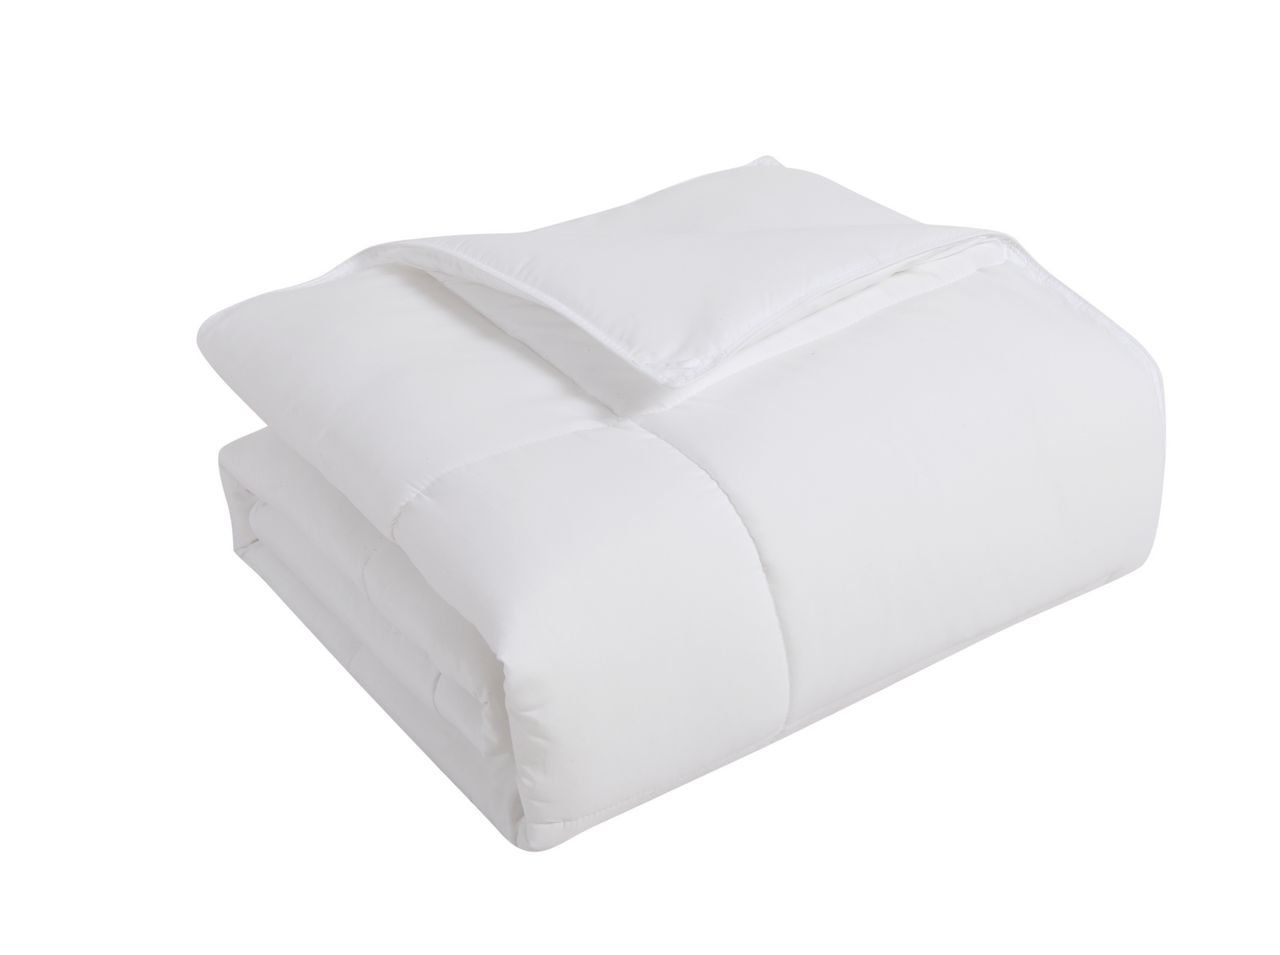 White Down Alternative Comforter Duvet Insert